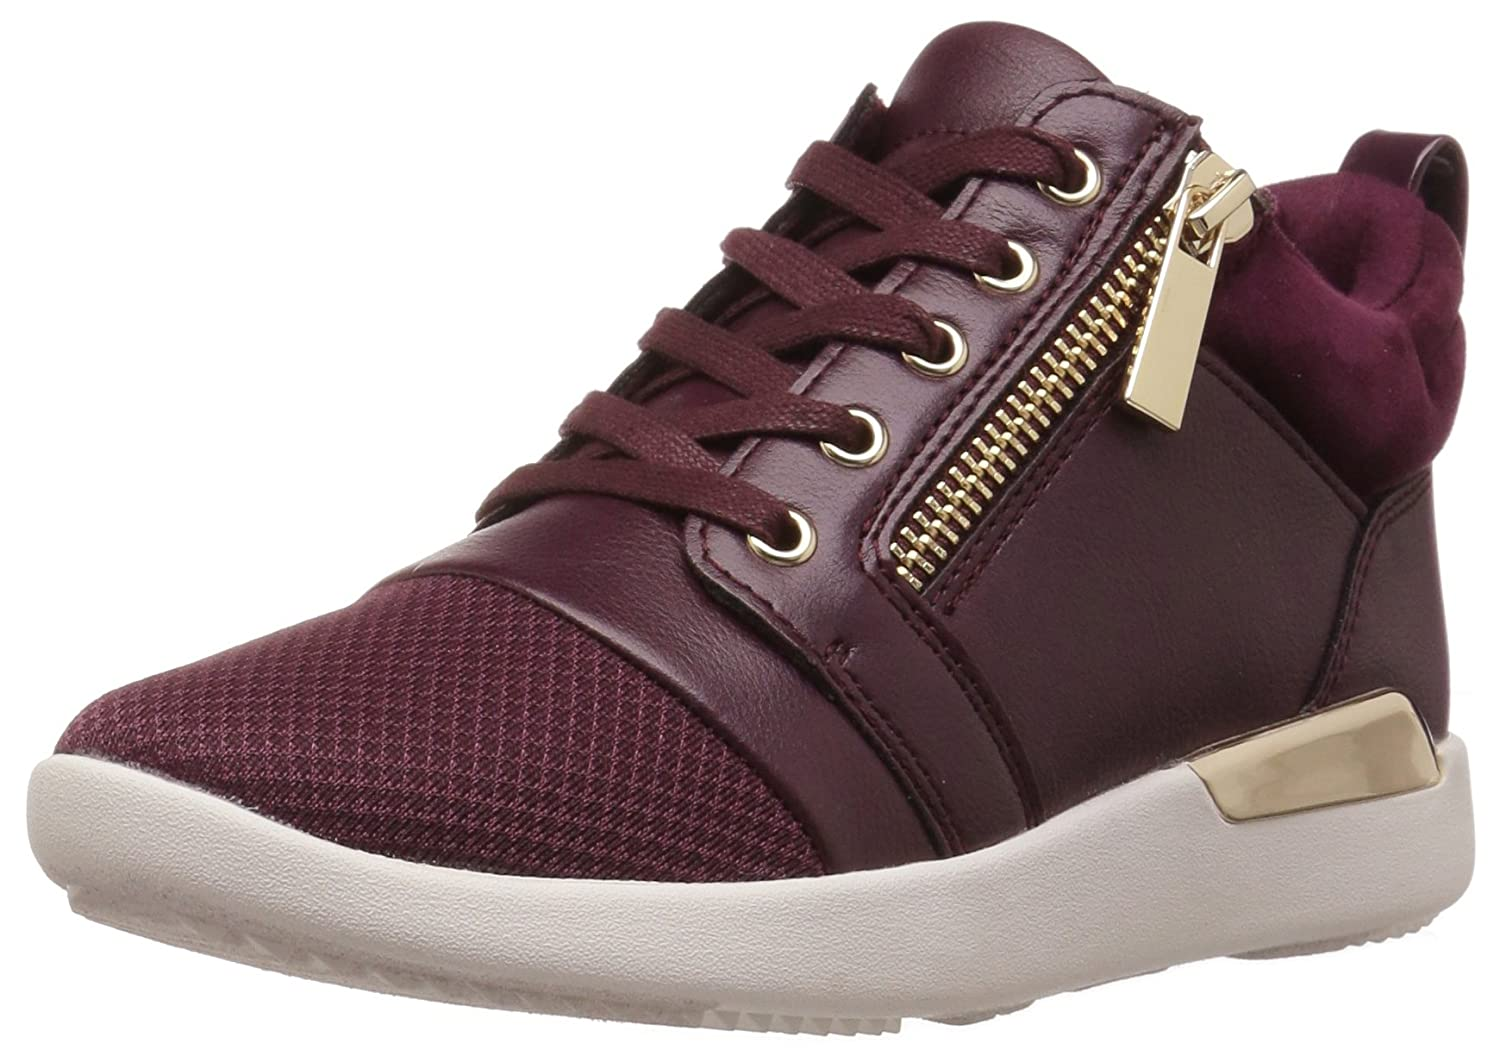 ALDO Women's Naven Fashion Sneaker B0721XZG1N 8.5 B(M) US|Bordo